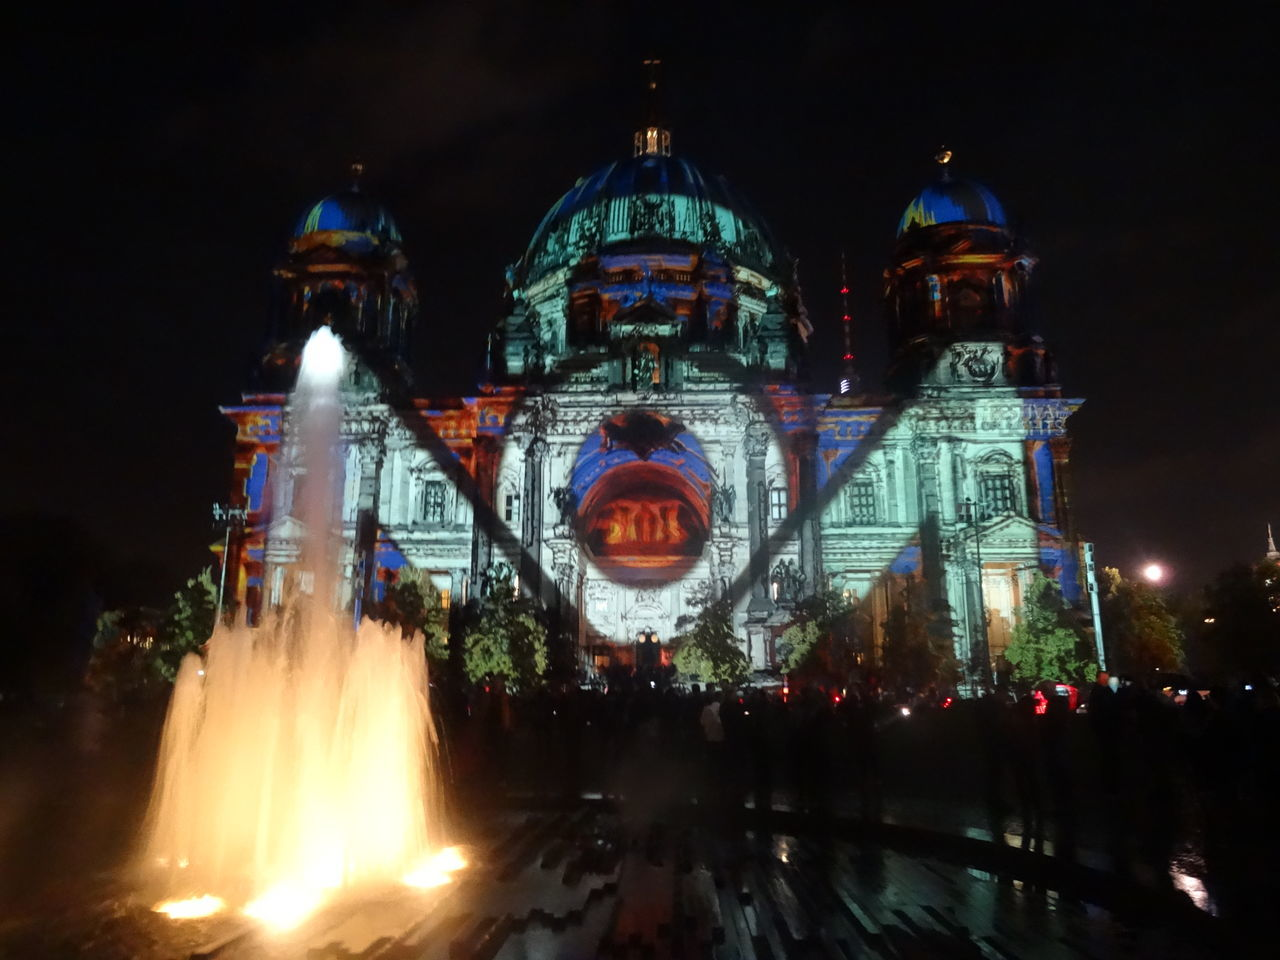 Architecture Berlin Berlin Cathedral Berlin Leuchtet Berliner Dom Berlinleuchtet Cathedral City Life City Lights City Lights At Night Festival Of Lights Fountain Illuminated Night